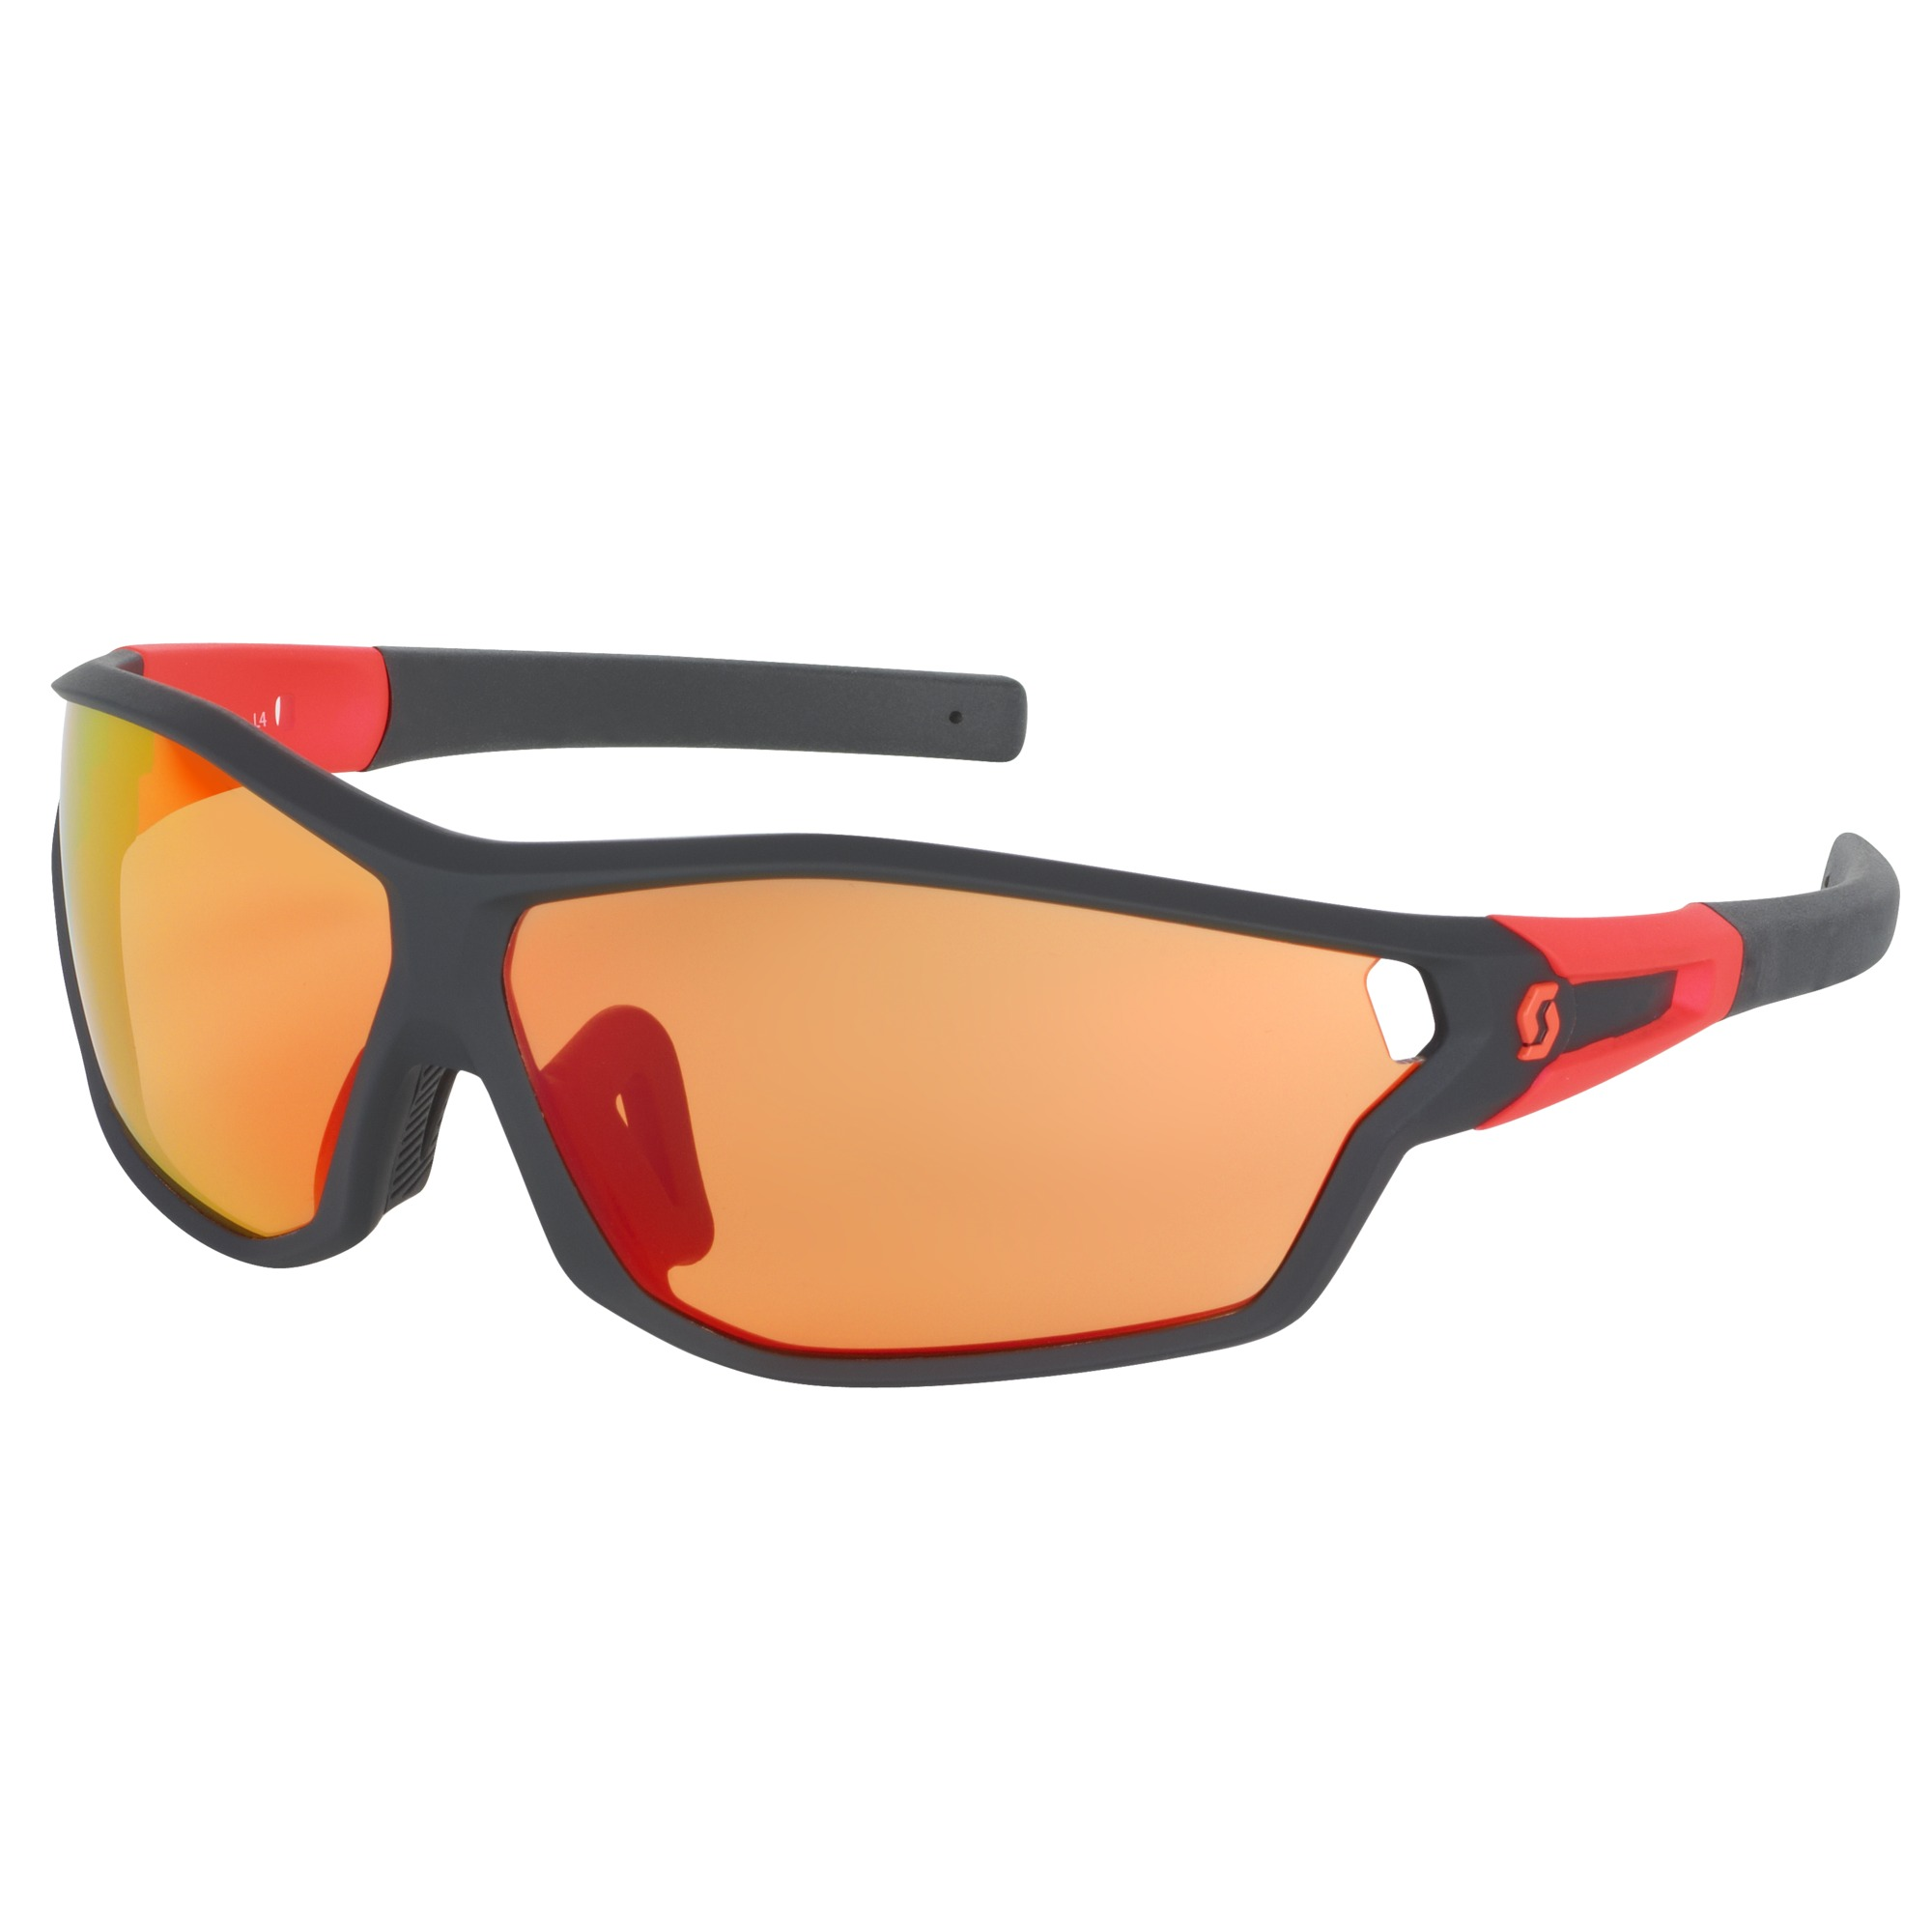 OCCHIALE SPORTIVO SCOTT LEAP FULL FRAME SUNGLASSES 241968 BLACK MATT NEON RED.jpg